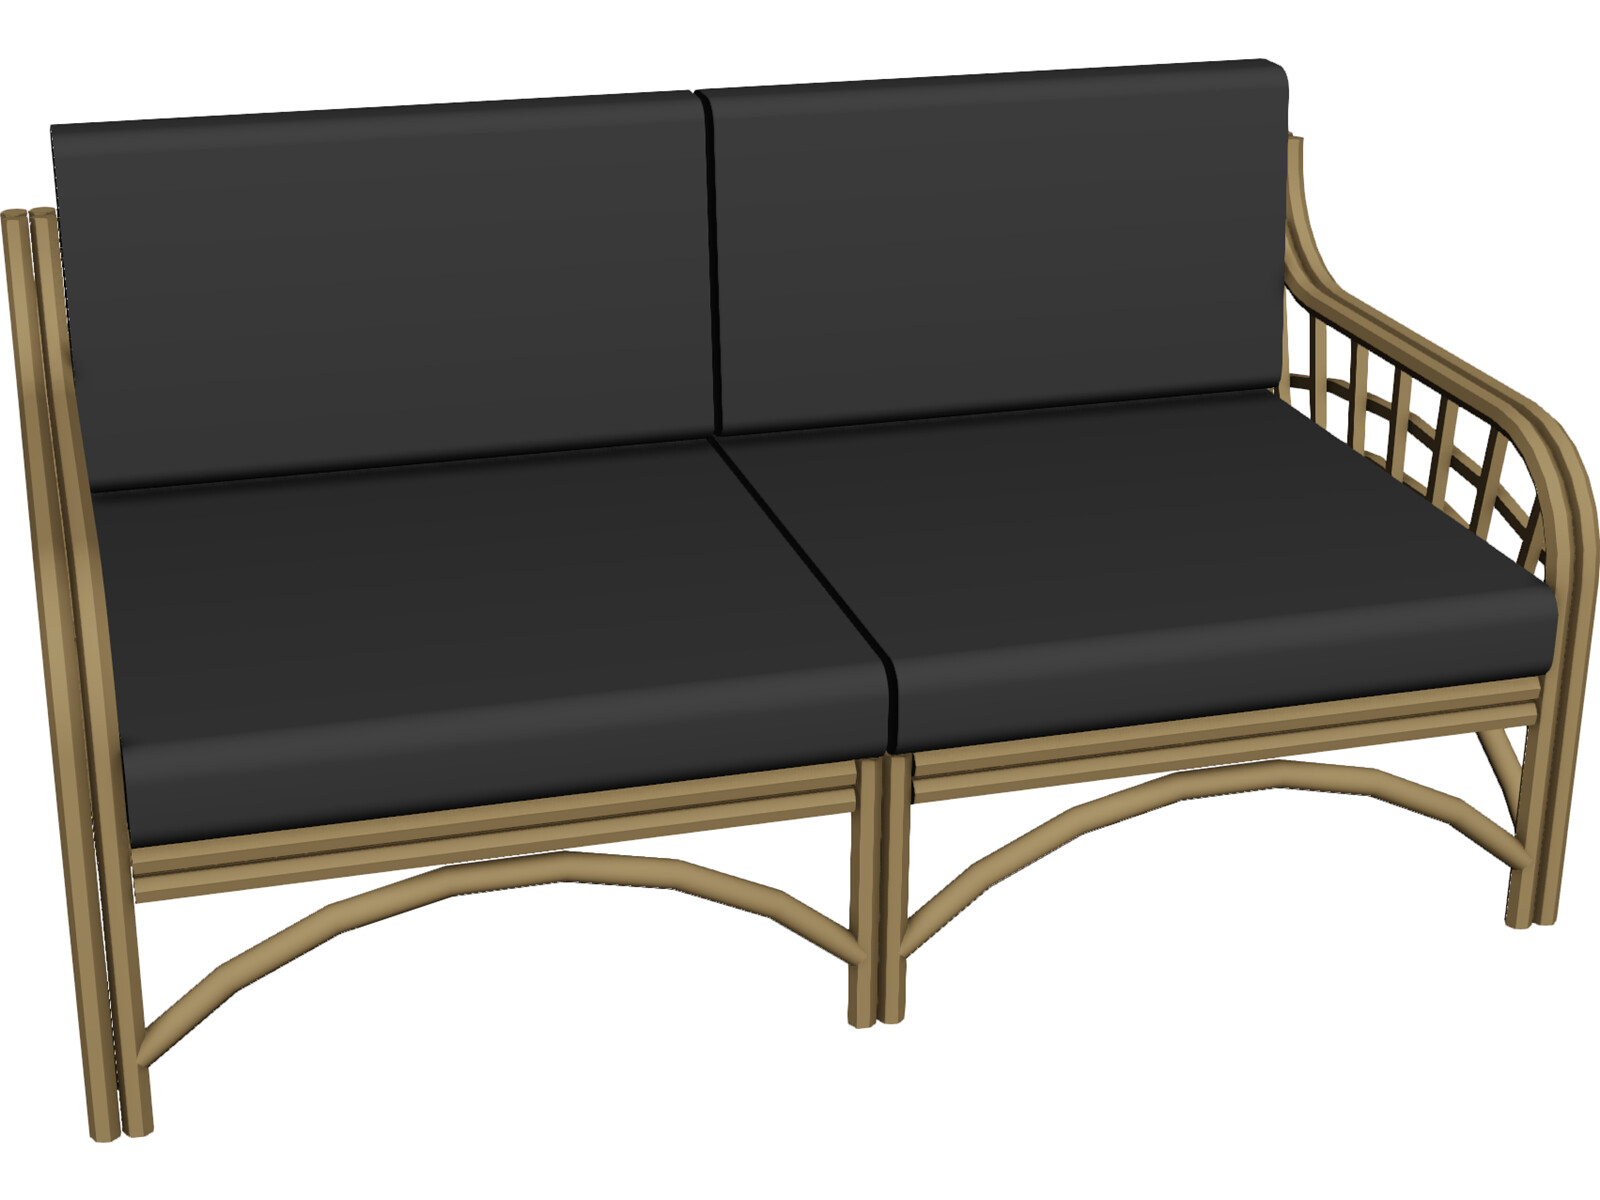 Sofa Bambu and Rattan 3D Model Download - 3D CAD Browser